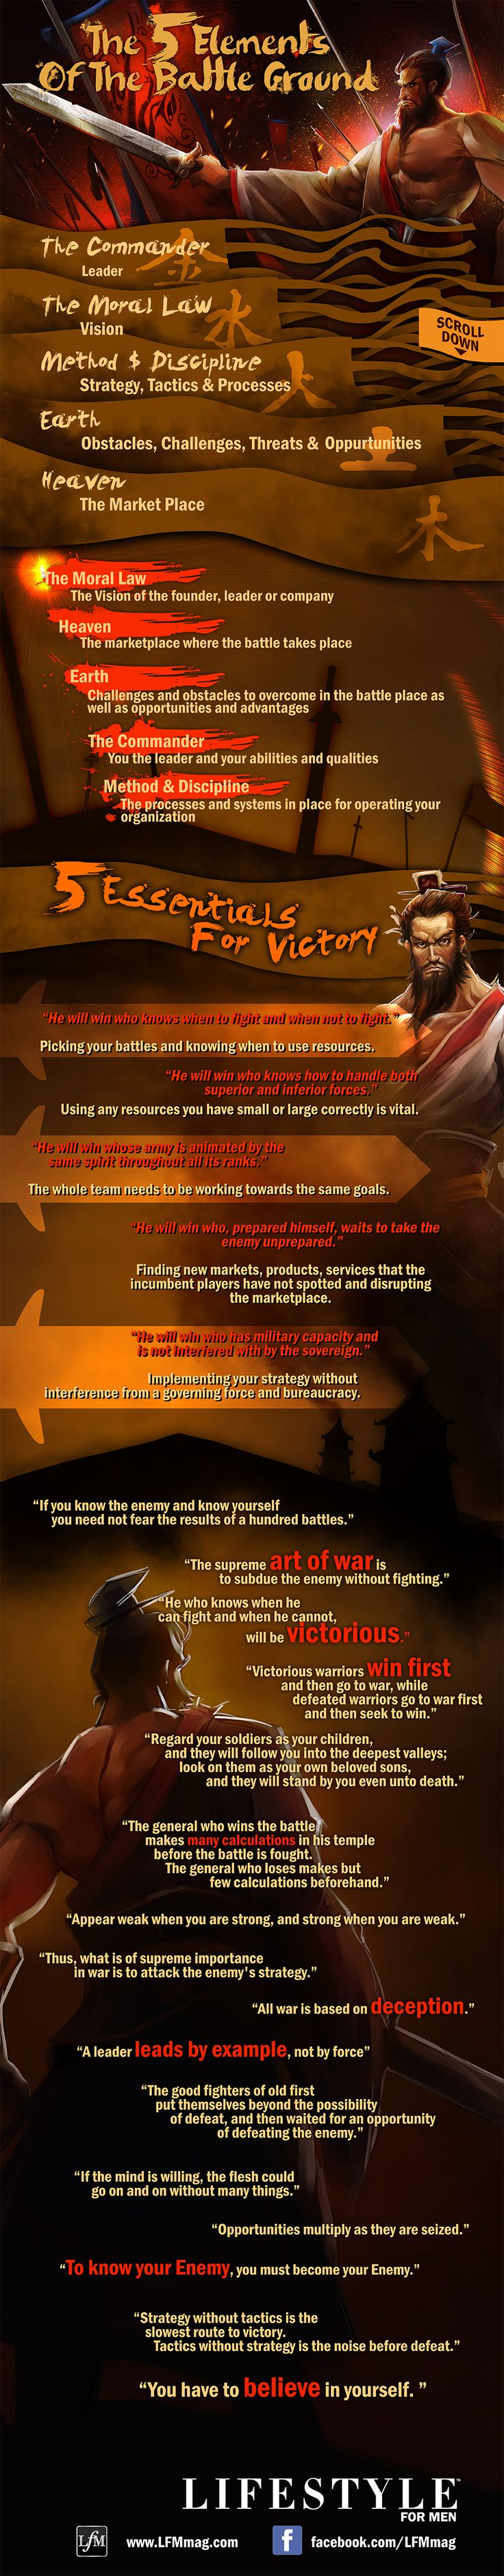 Sun Tzu Art Of War Infographic - The Art Of War Decoded As An Infographic By Lifestyle For Men Magazine